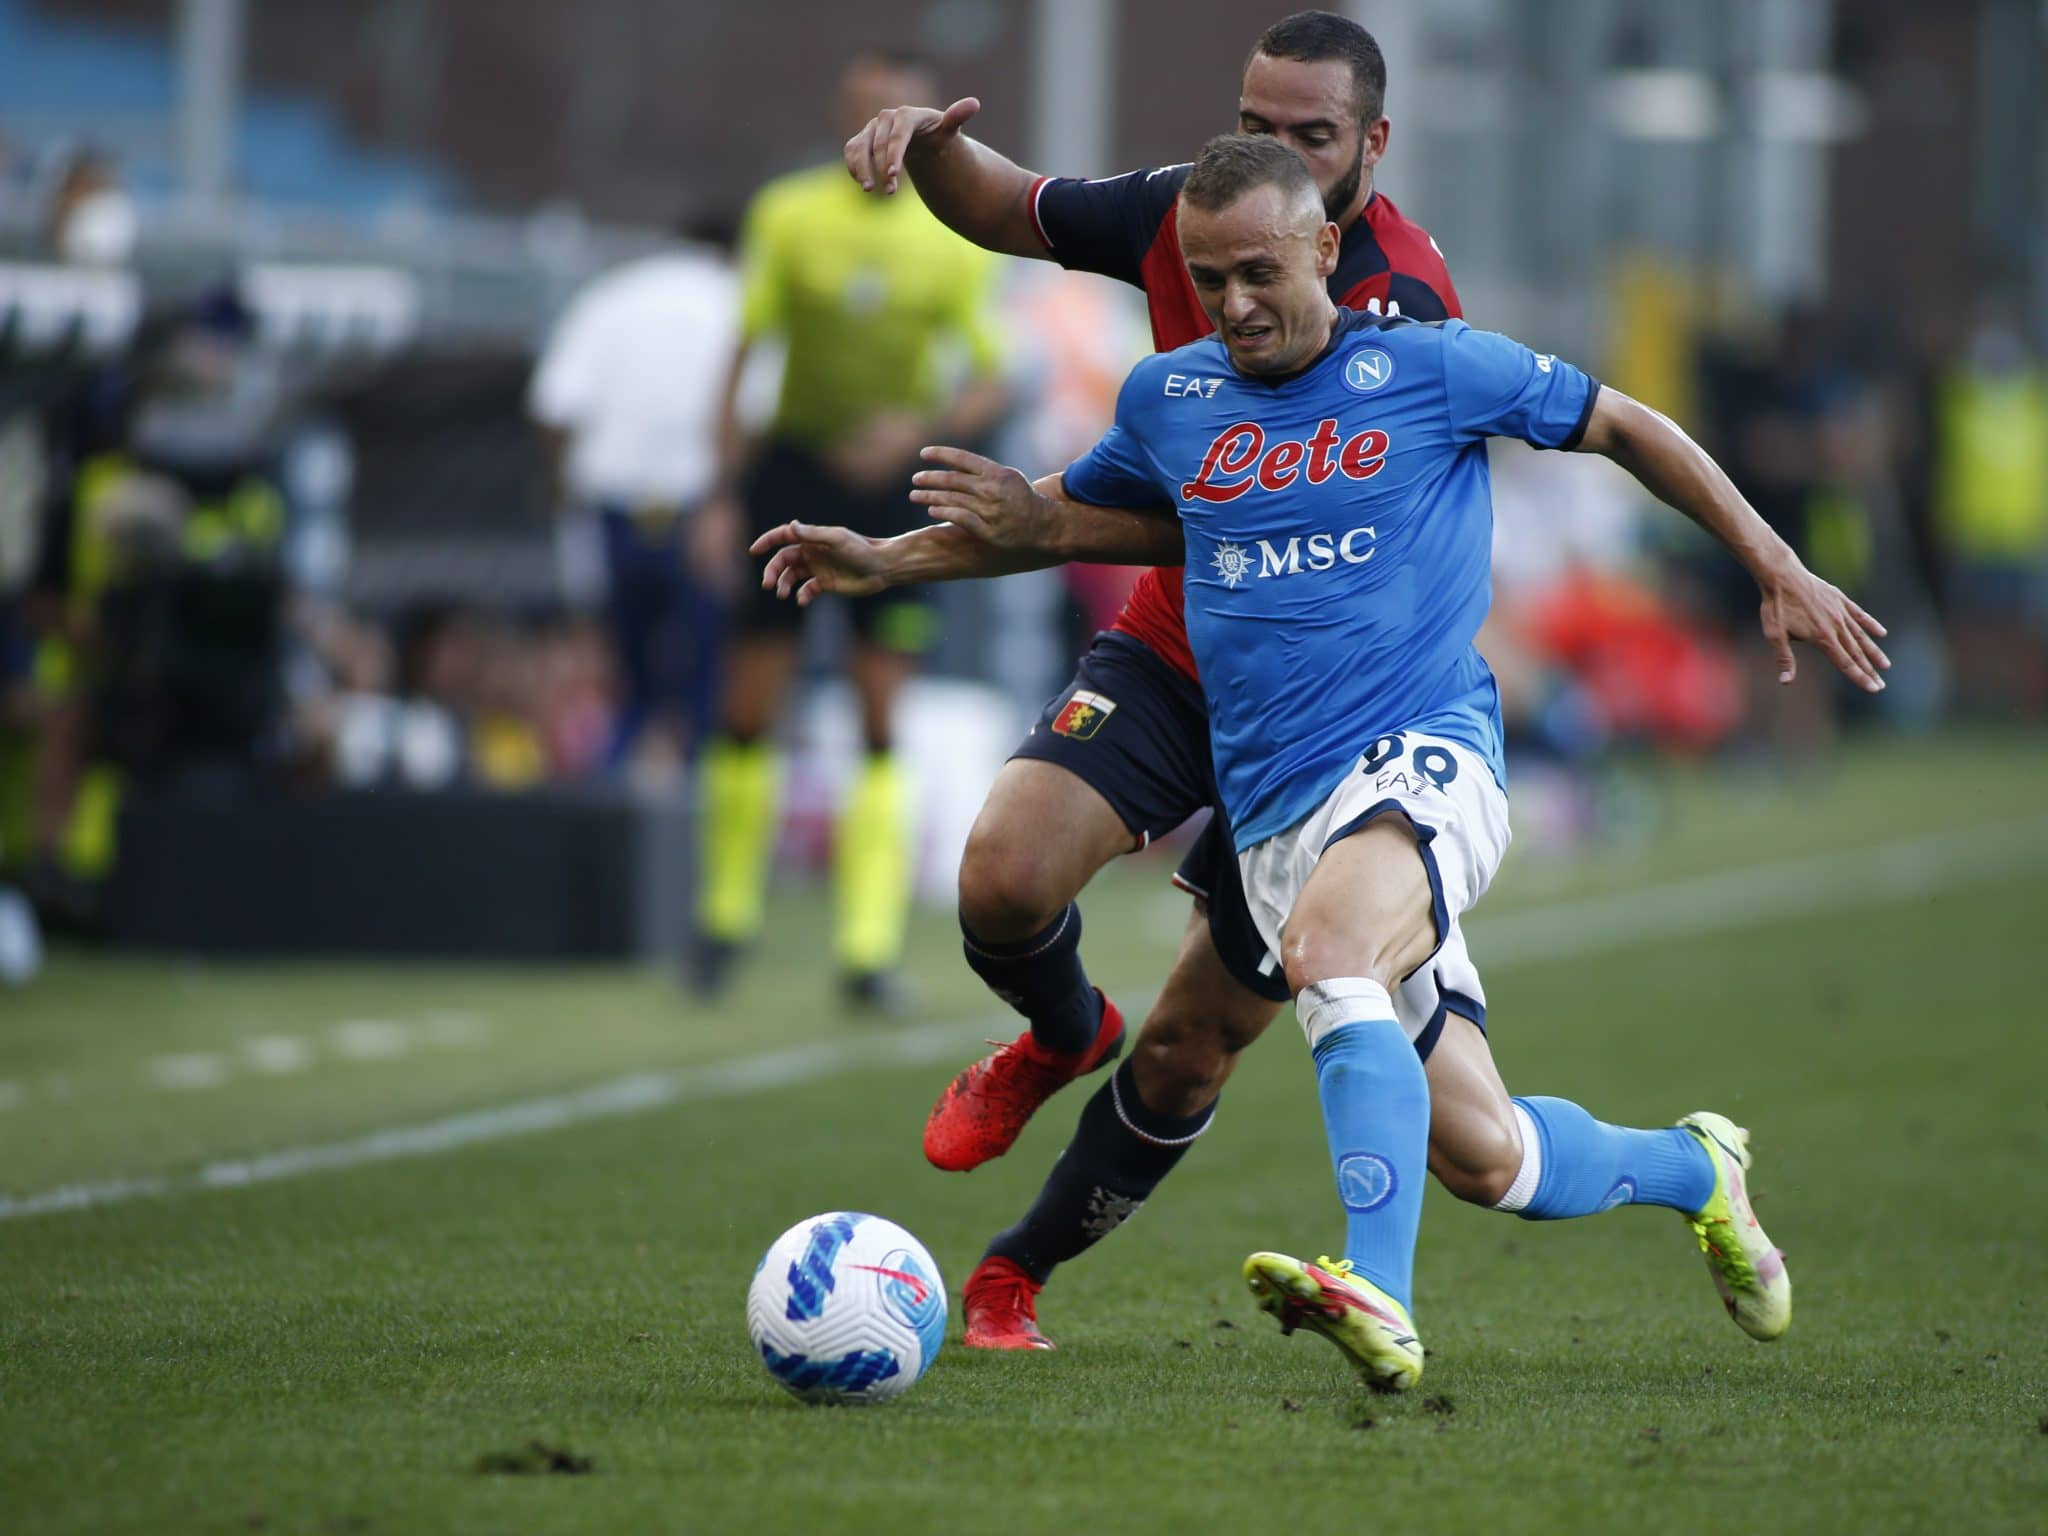 Stanislav Lobotka during the Serie A match between Genoa CFC and SSC Napoli at Stadio Luigi Ferraris on August 29, 2021 in Genoa, Italy. (Photo by Loris Roselli/NurPhoto via Getty Images)